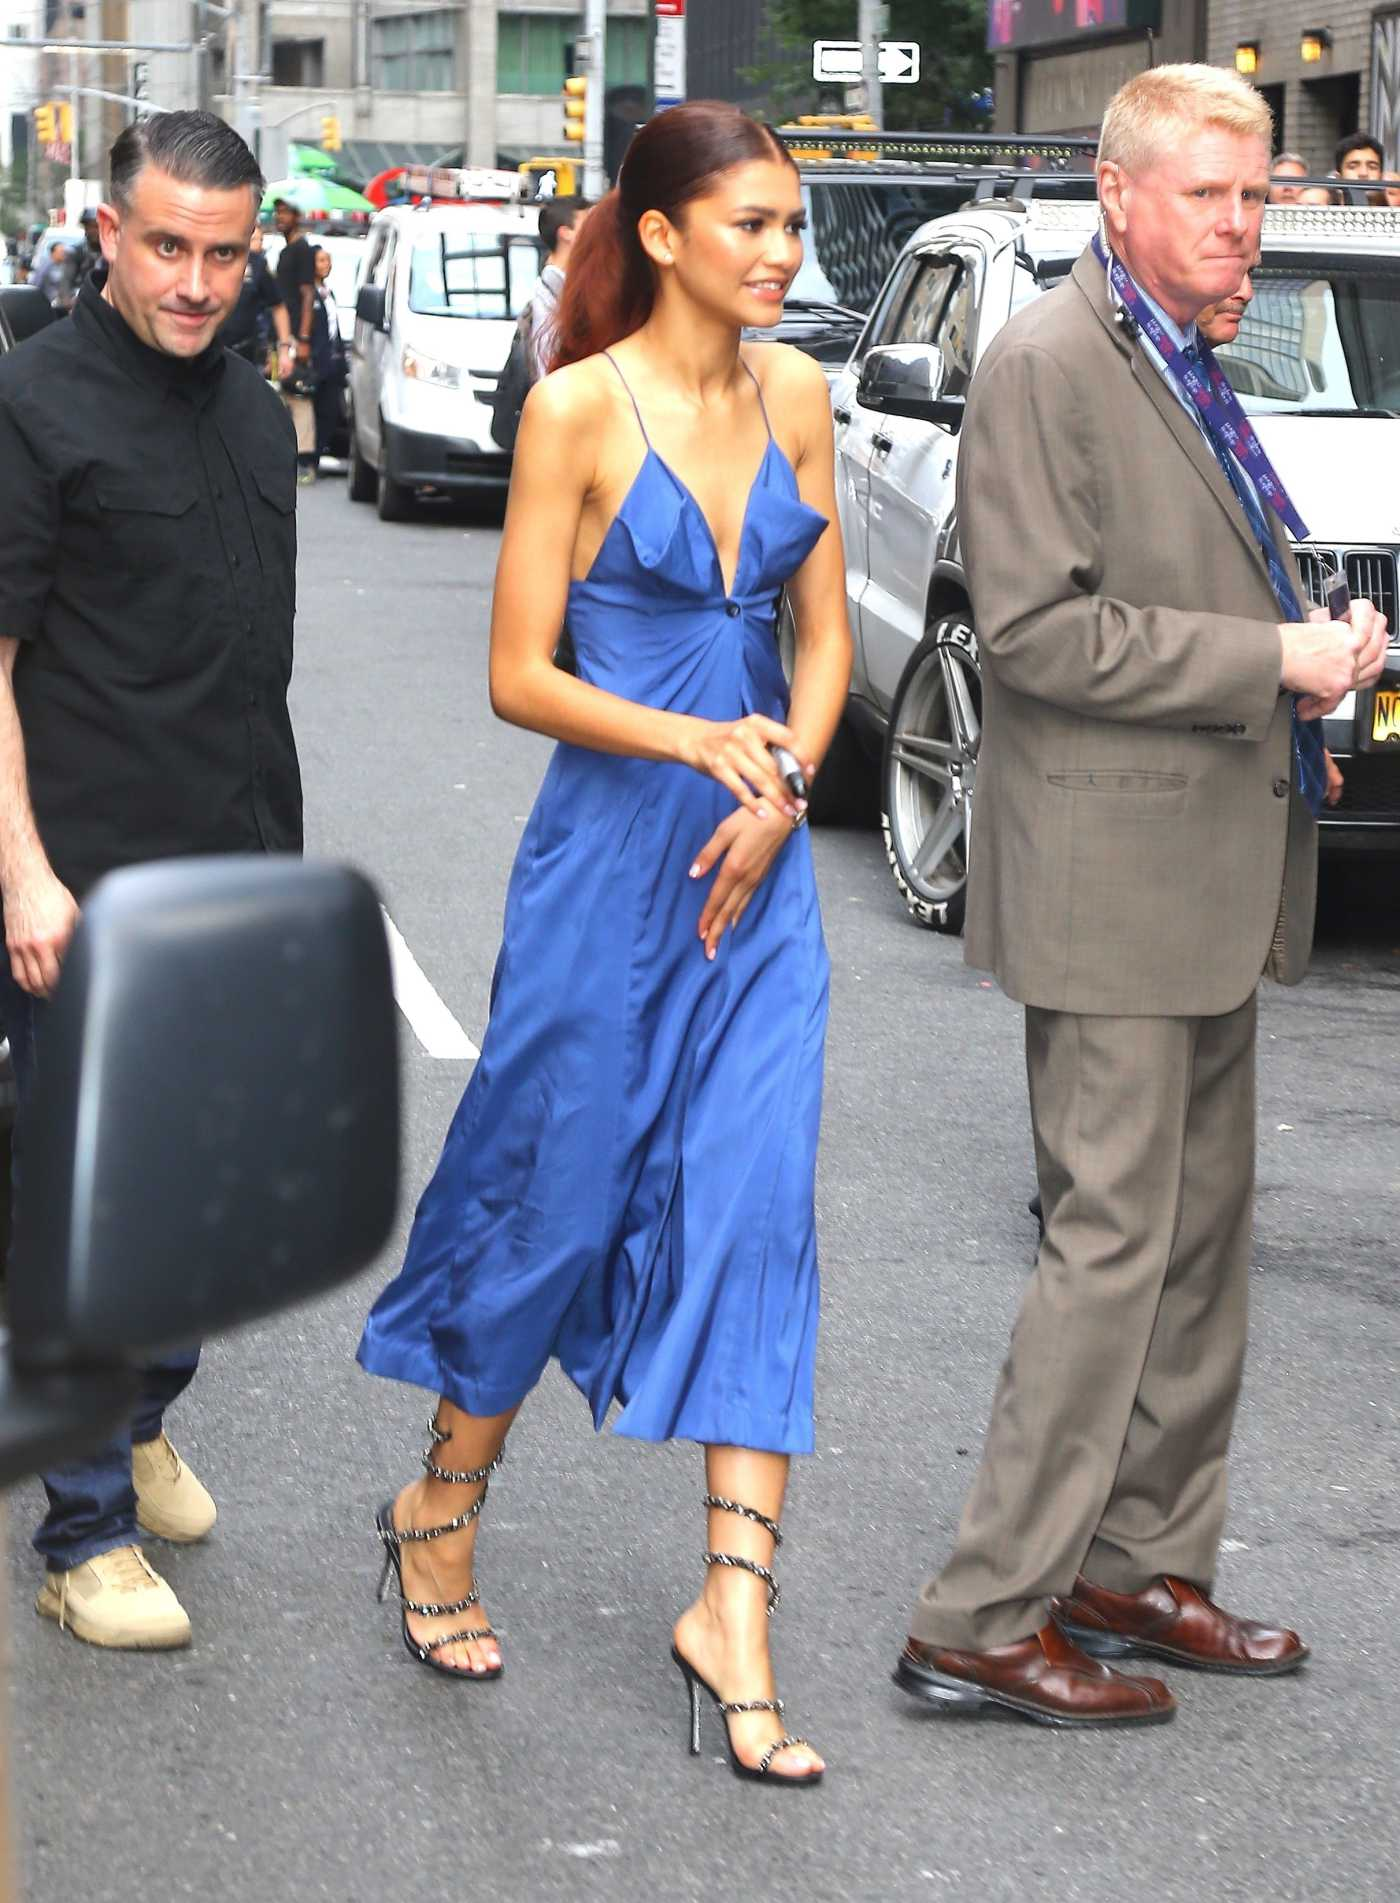 Zendaya in a Bllue Dress Leaves The Late Show with Stephen Colbert in New York 06/25/2019